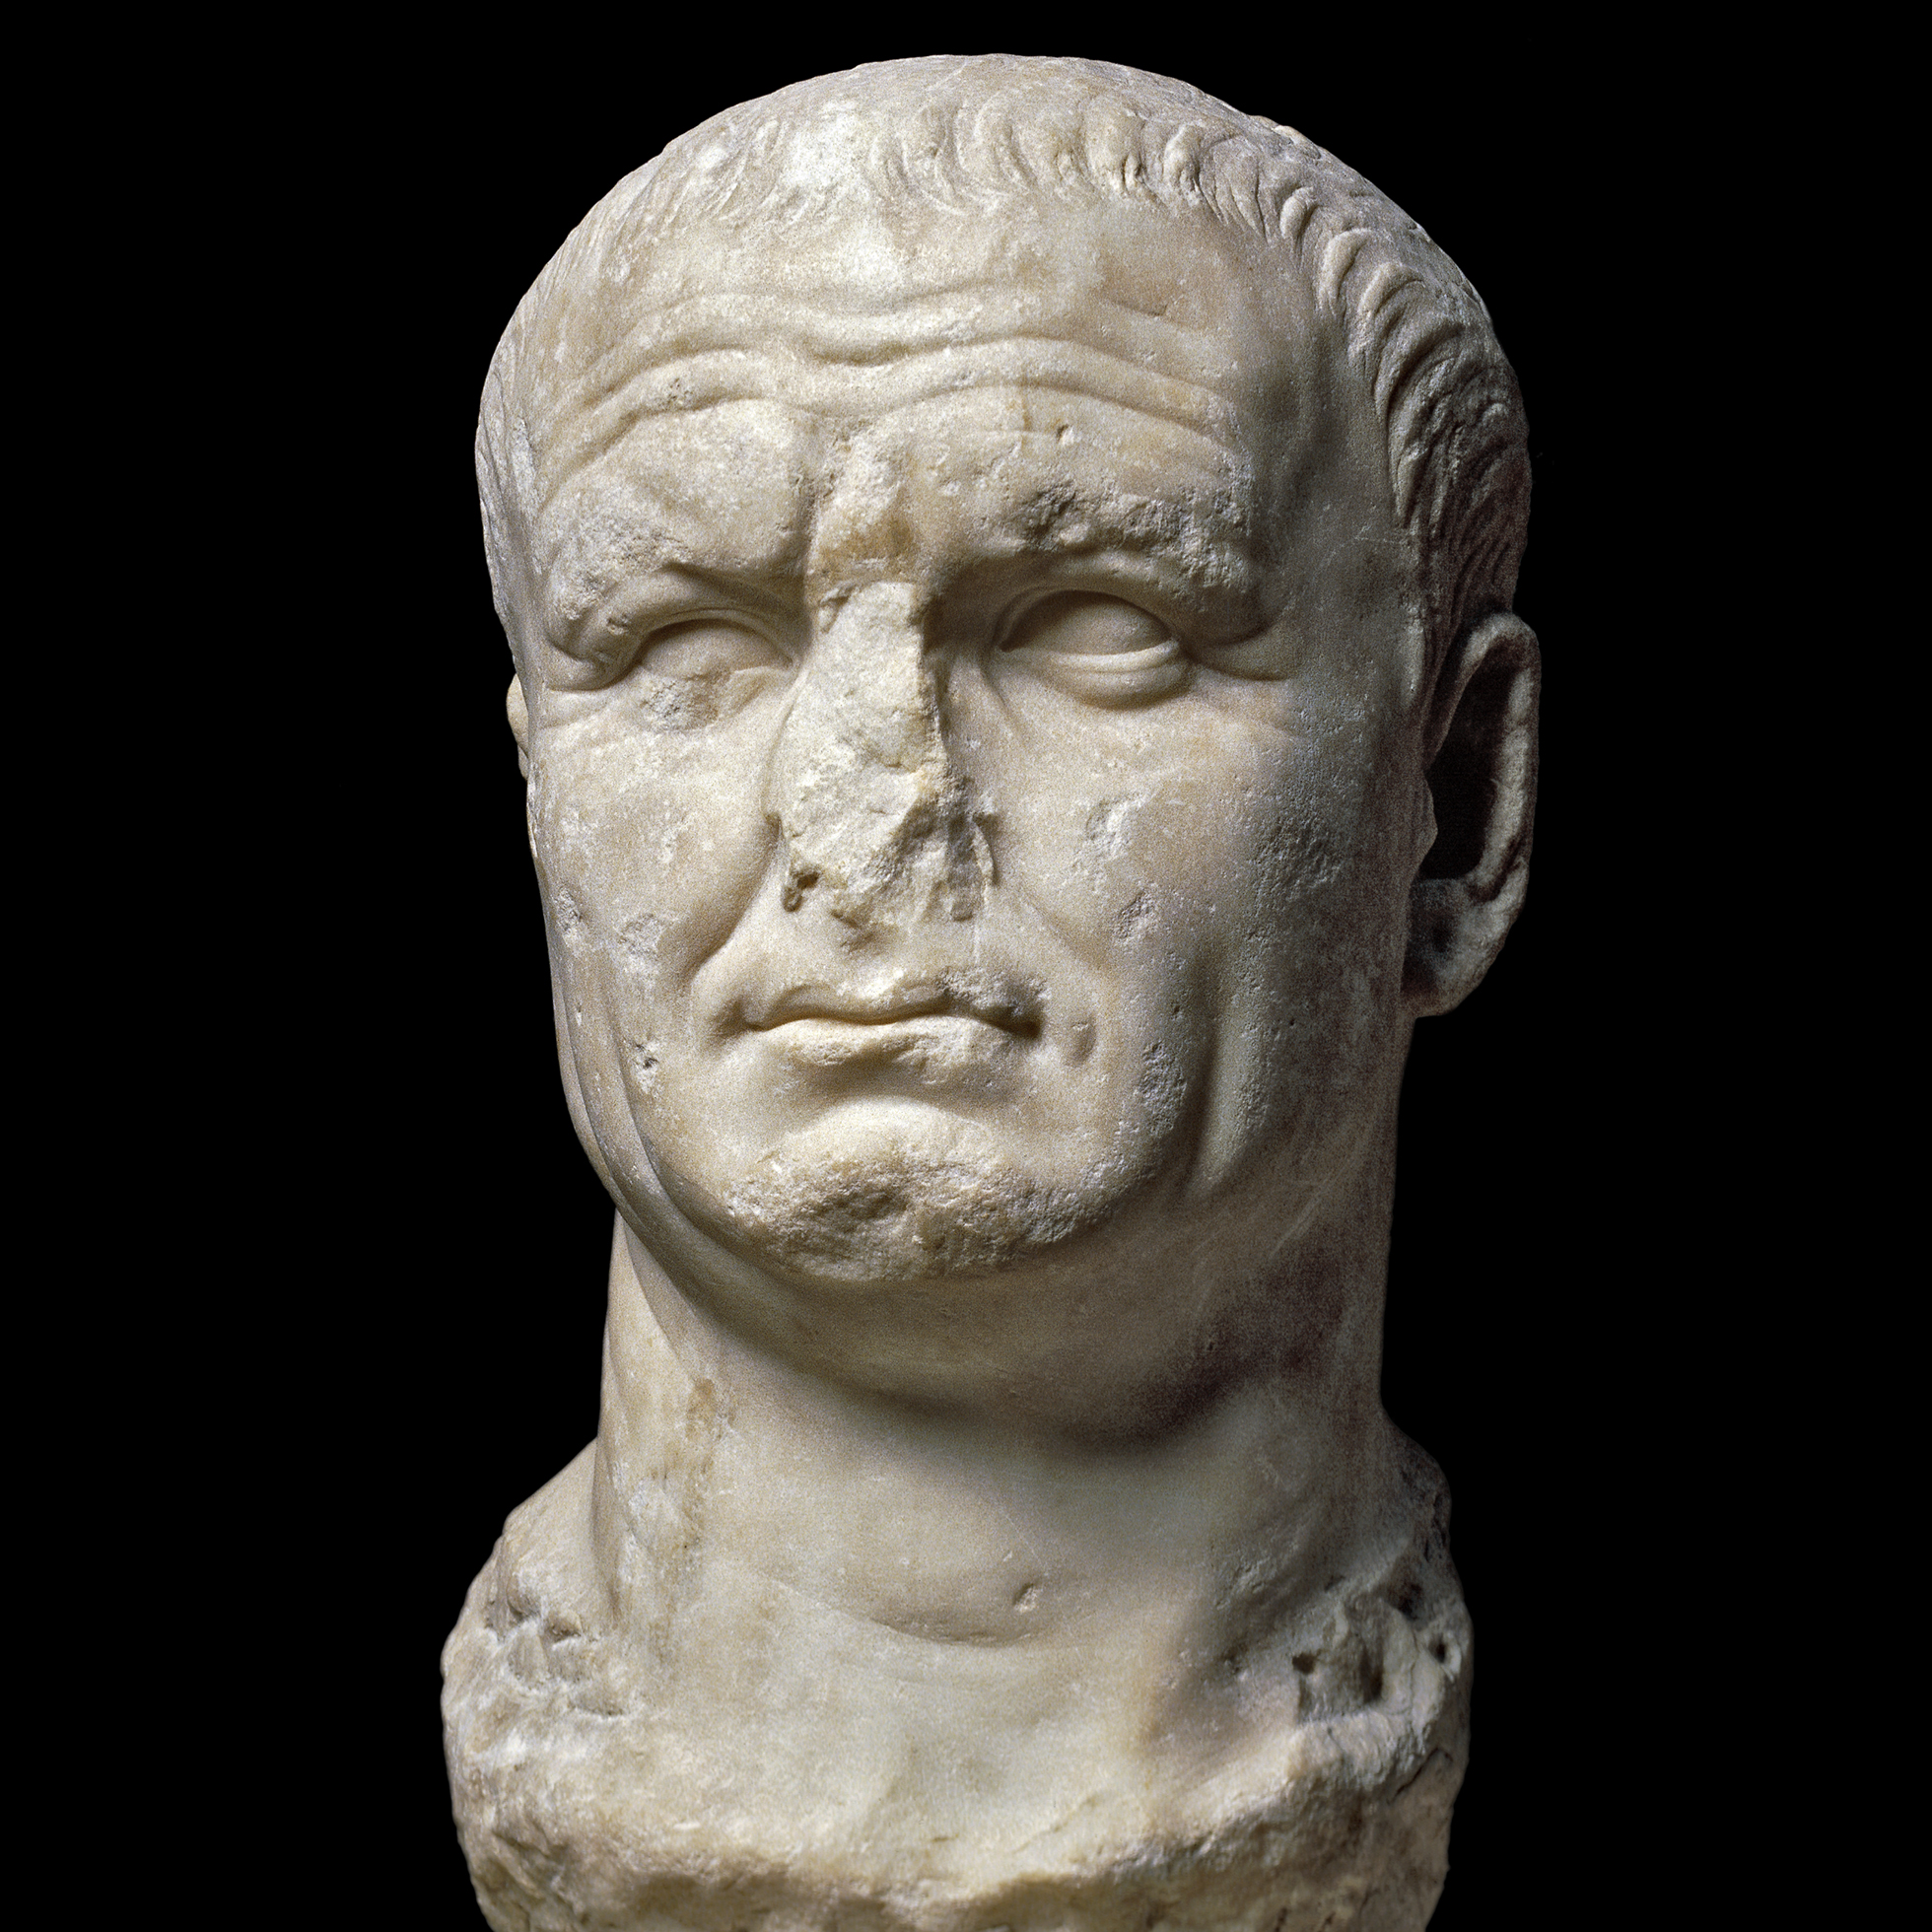 A cream coloured marble bust of the emperor Vespasian, with deeply set forehead wrinkles, short hair, and a missing nose.